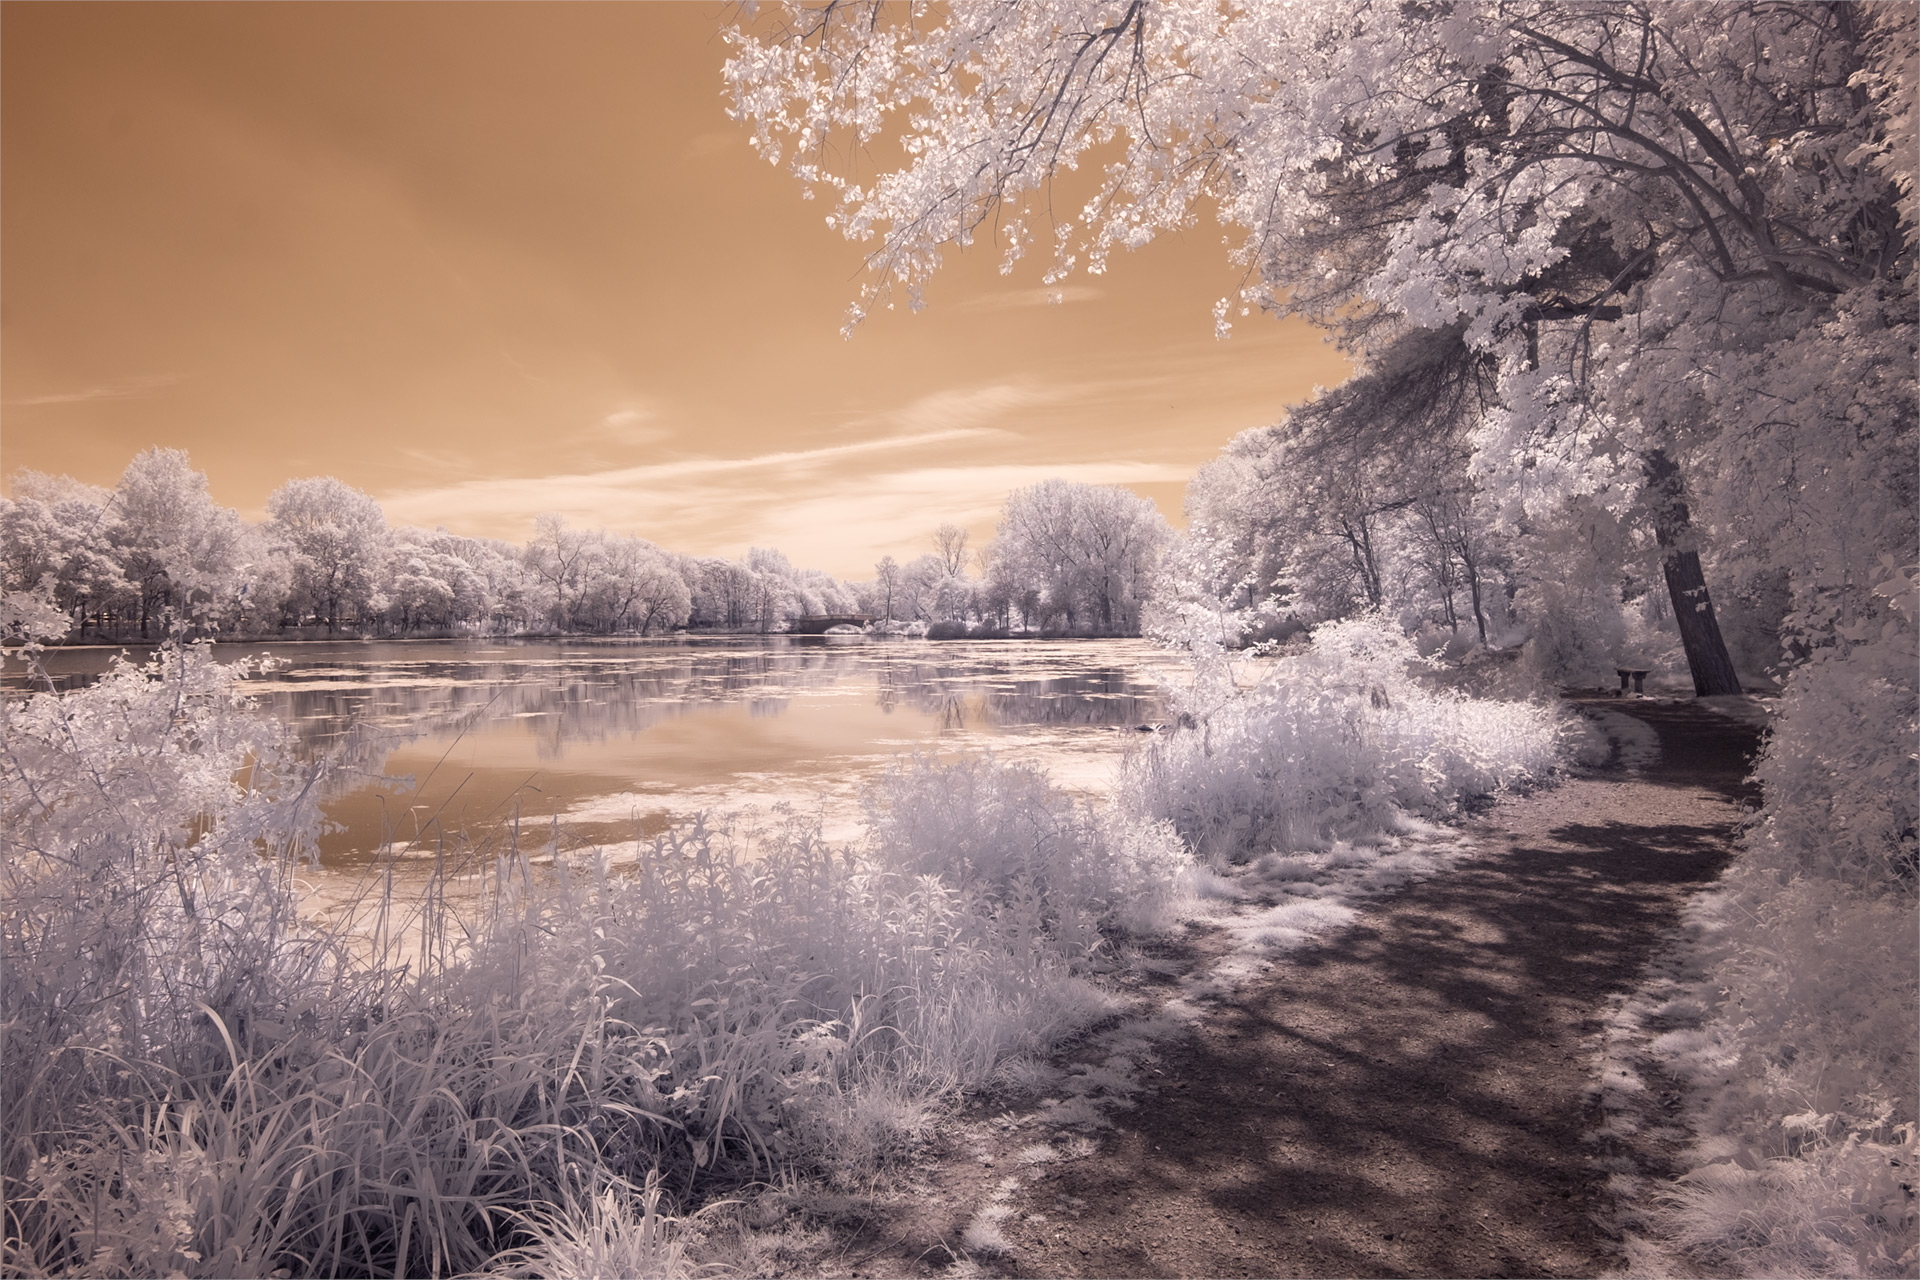 Stanley Park, May 2019 (IR) / Stanley Park, Show the Original, Landscape Photography, Infrared, Fujinon XF 14mm f/2.8, Fujifilm X-E2, Blackpool [stanley park may 2019 o]